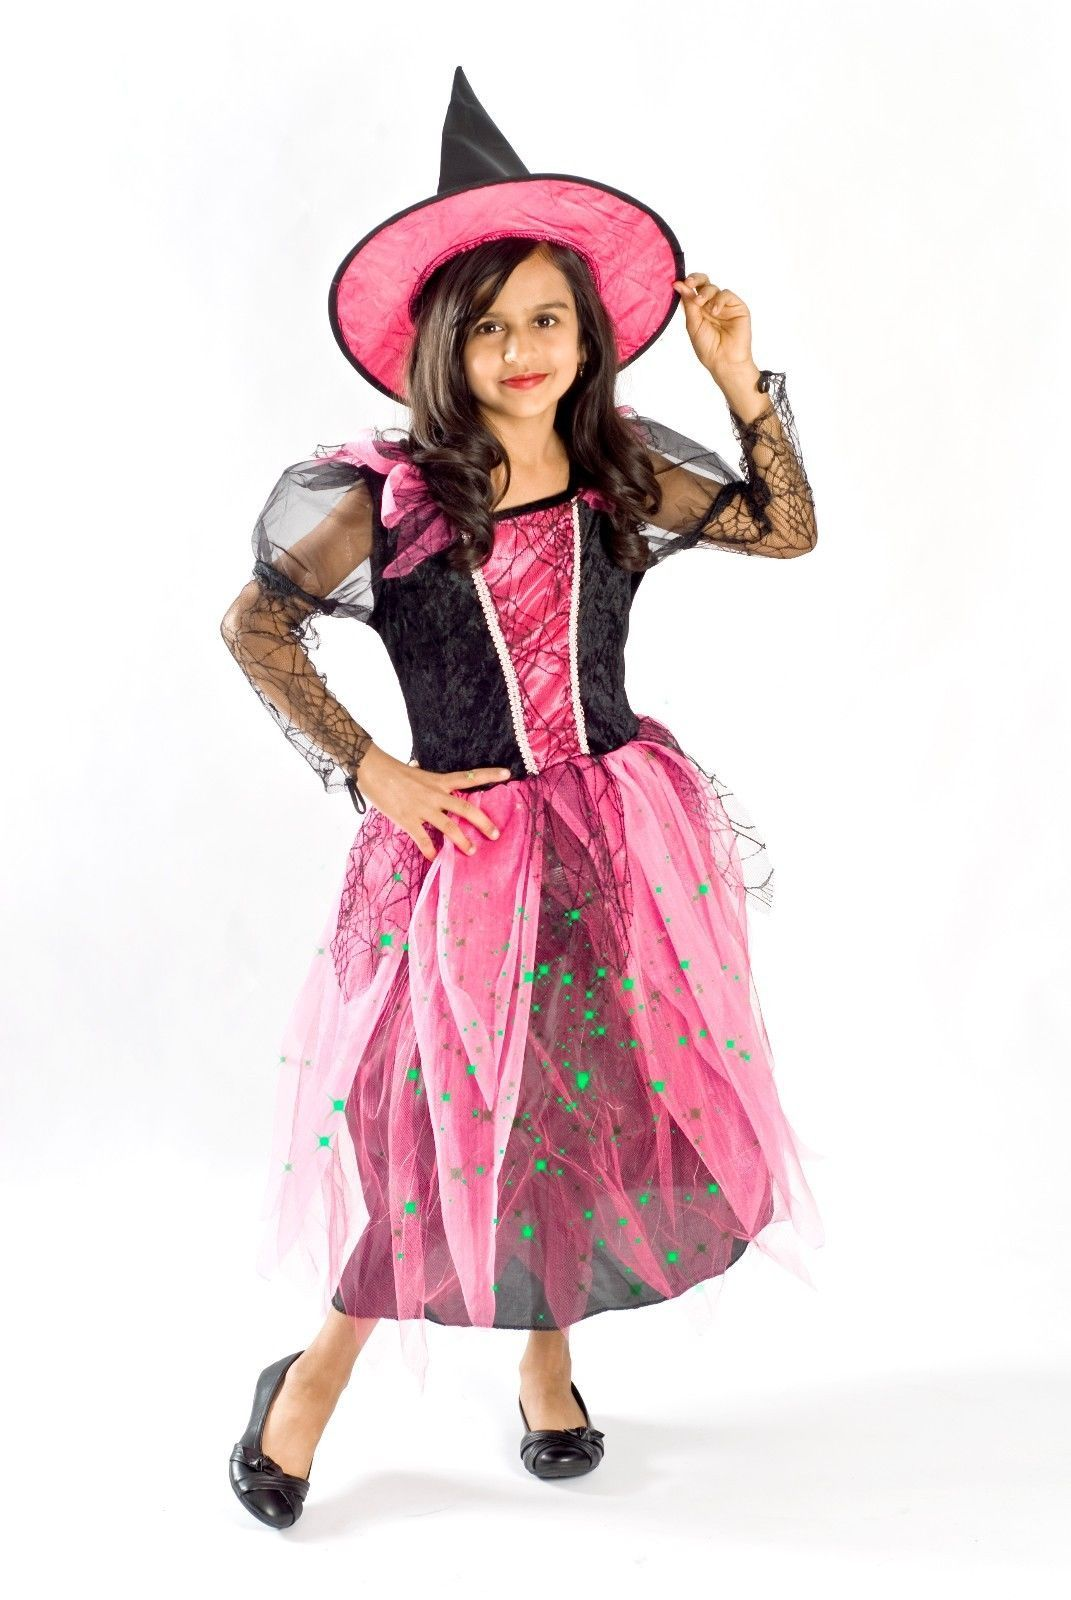 witch costume for girls light up pink fiber optic halloween size 4 5 6 7 8 - 5 Girl Halloween Costumes